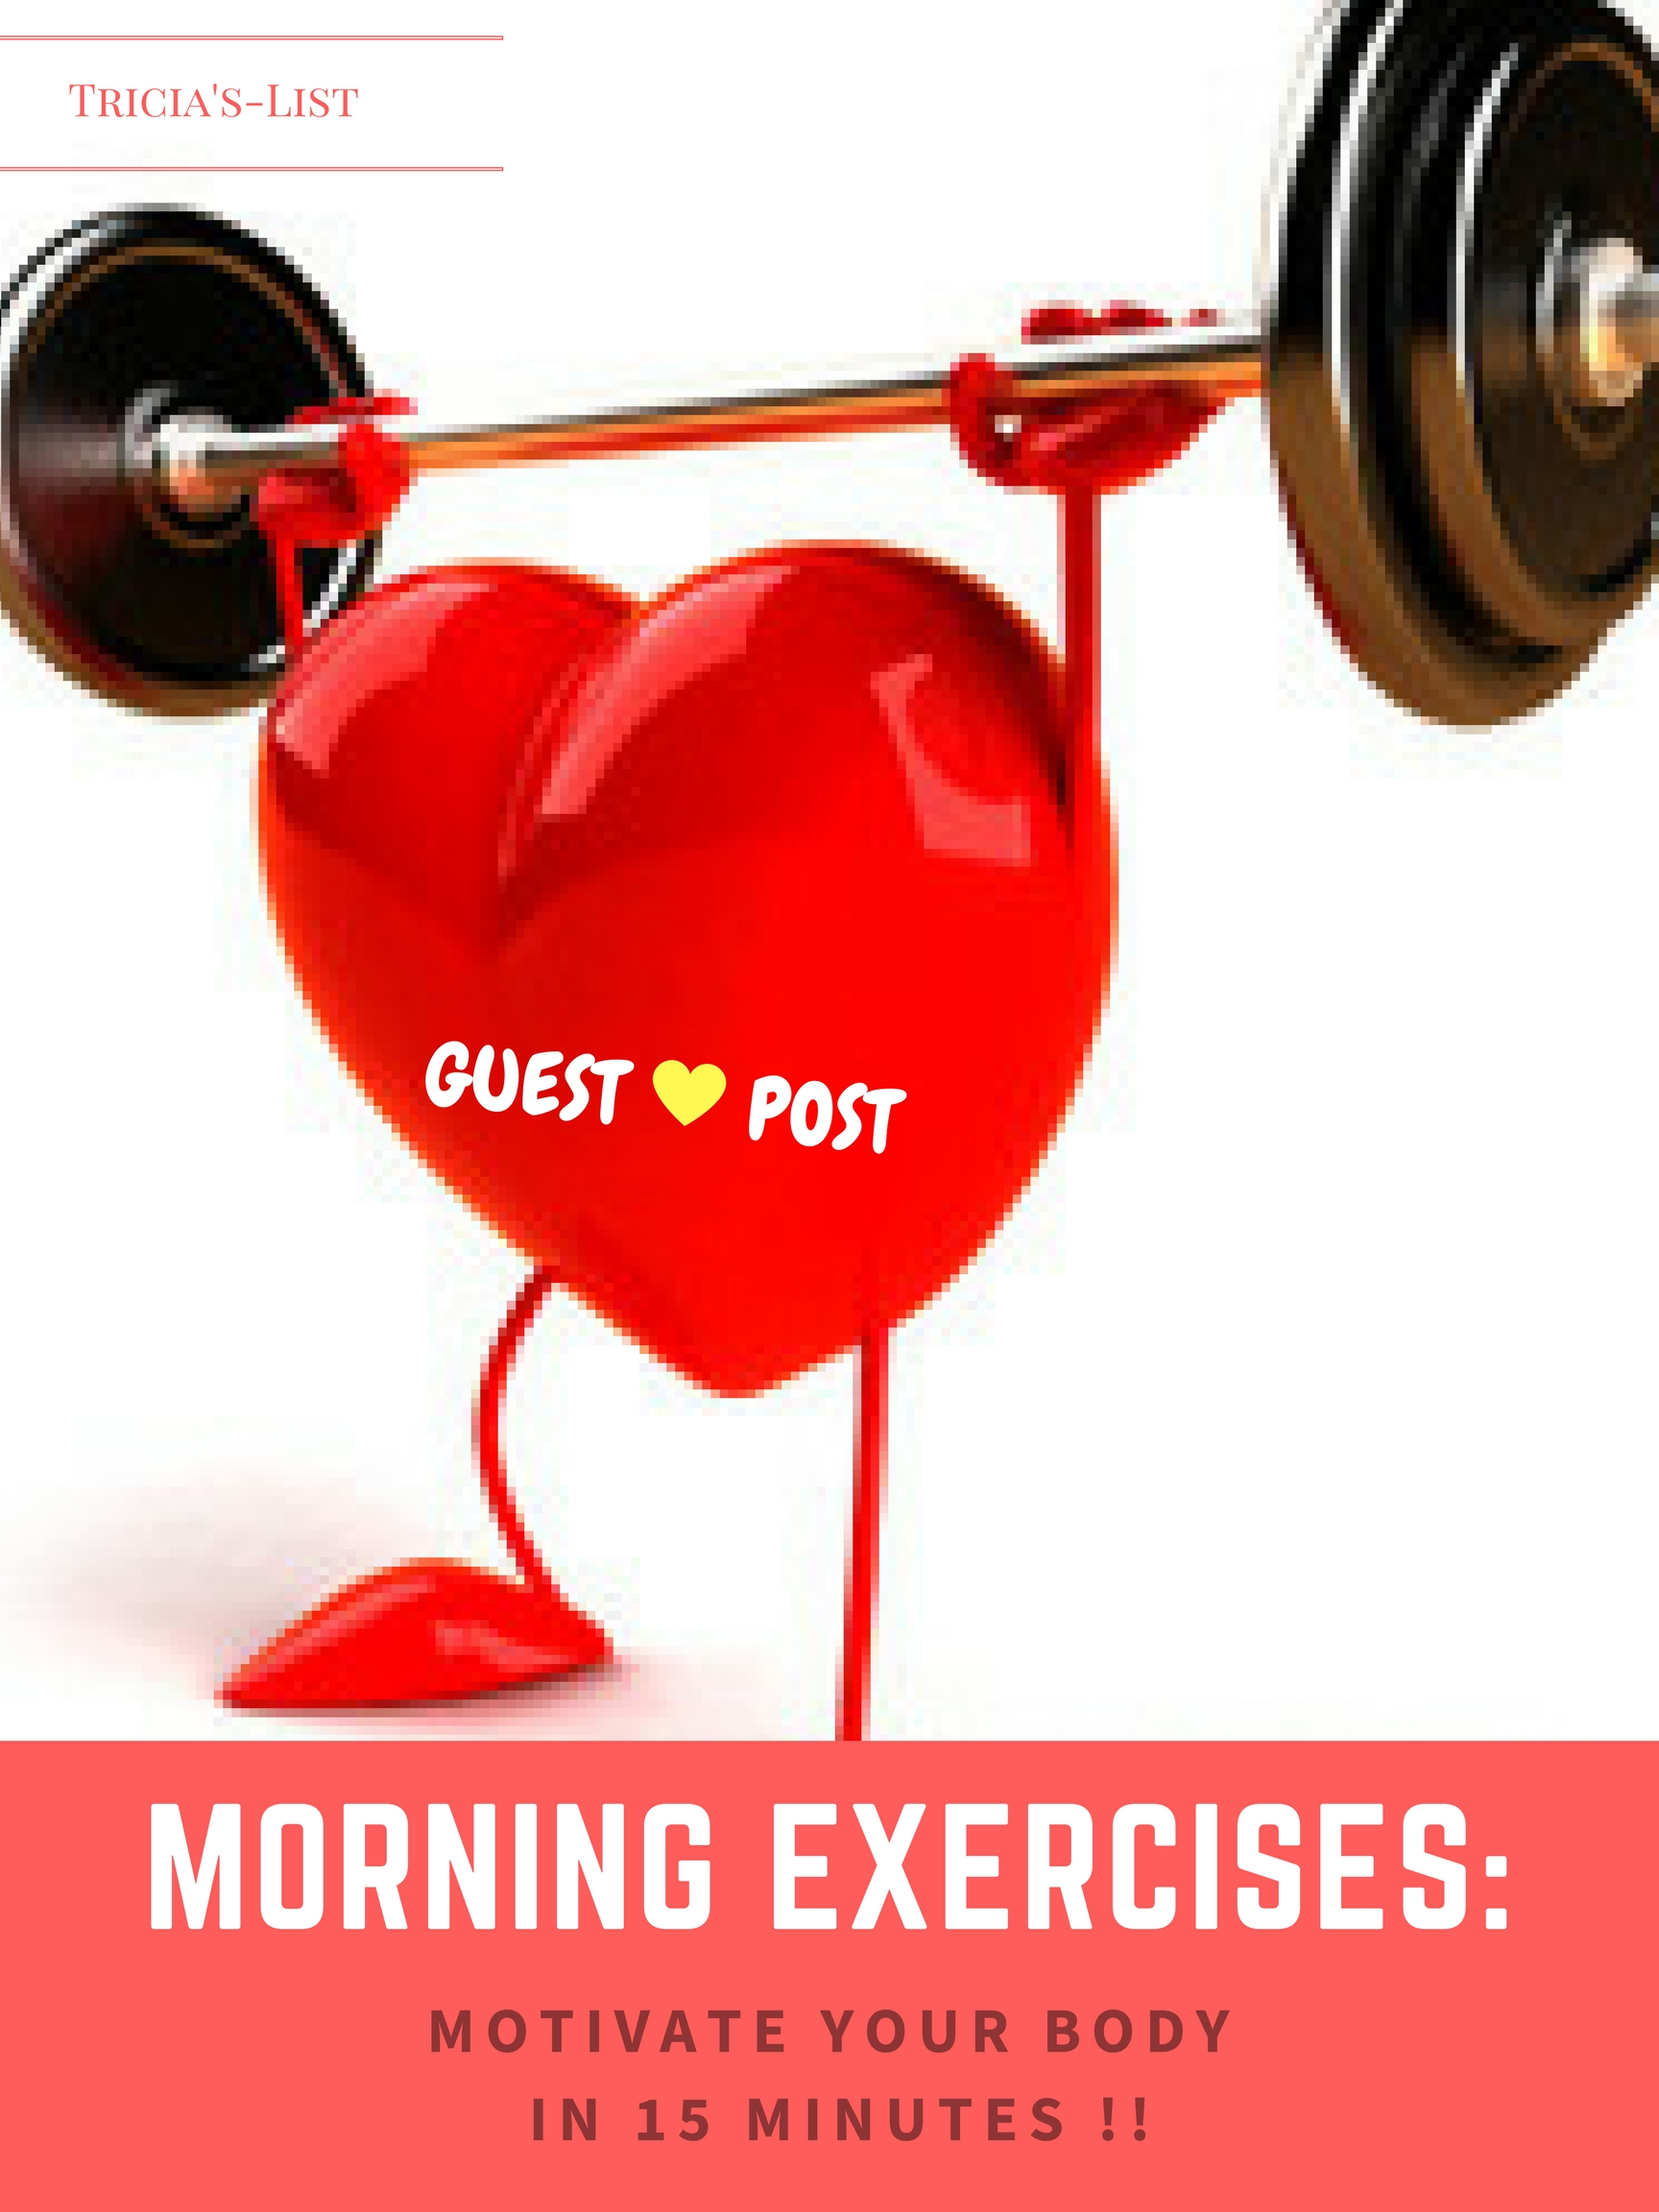 How To Motivate Your Body By 15 Minutes Morning Exercises #Sponsored #GuestPost